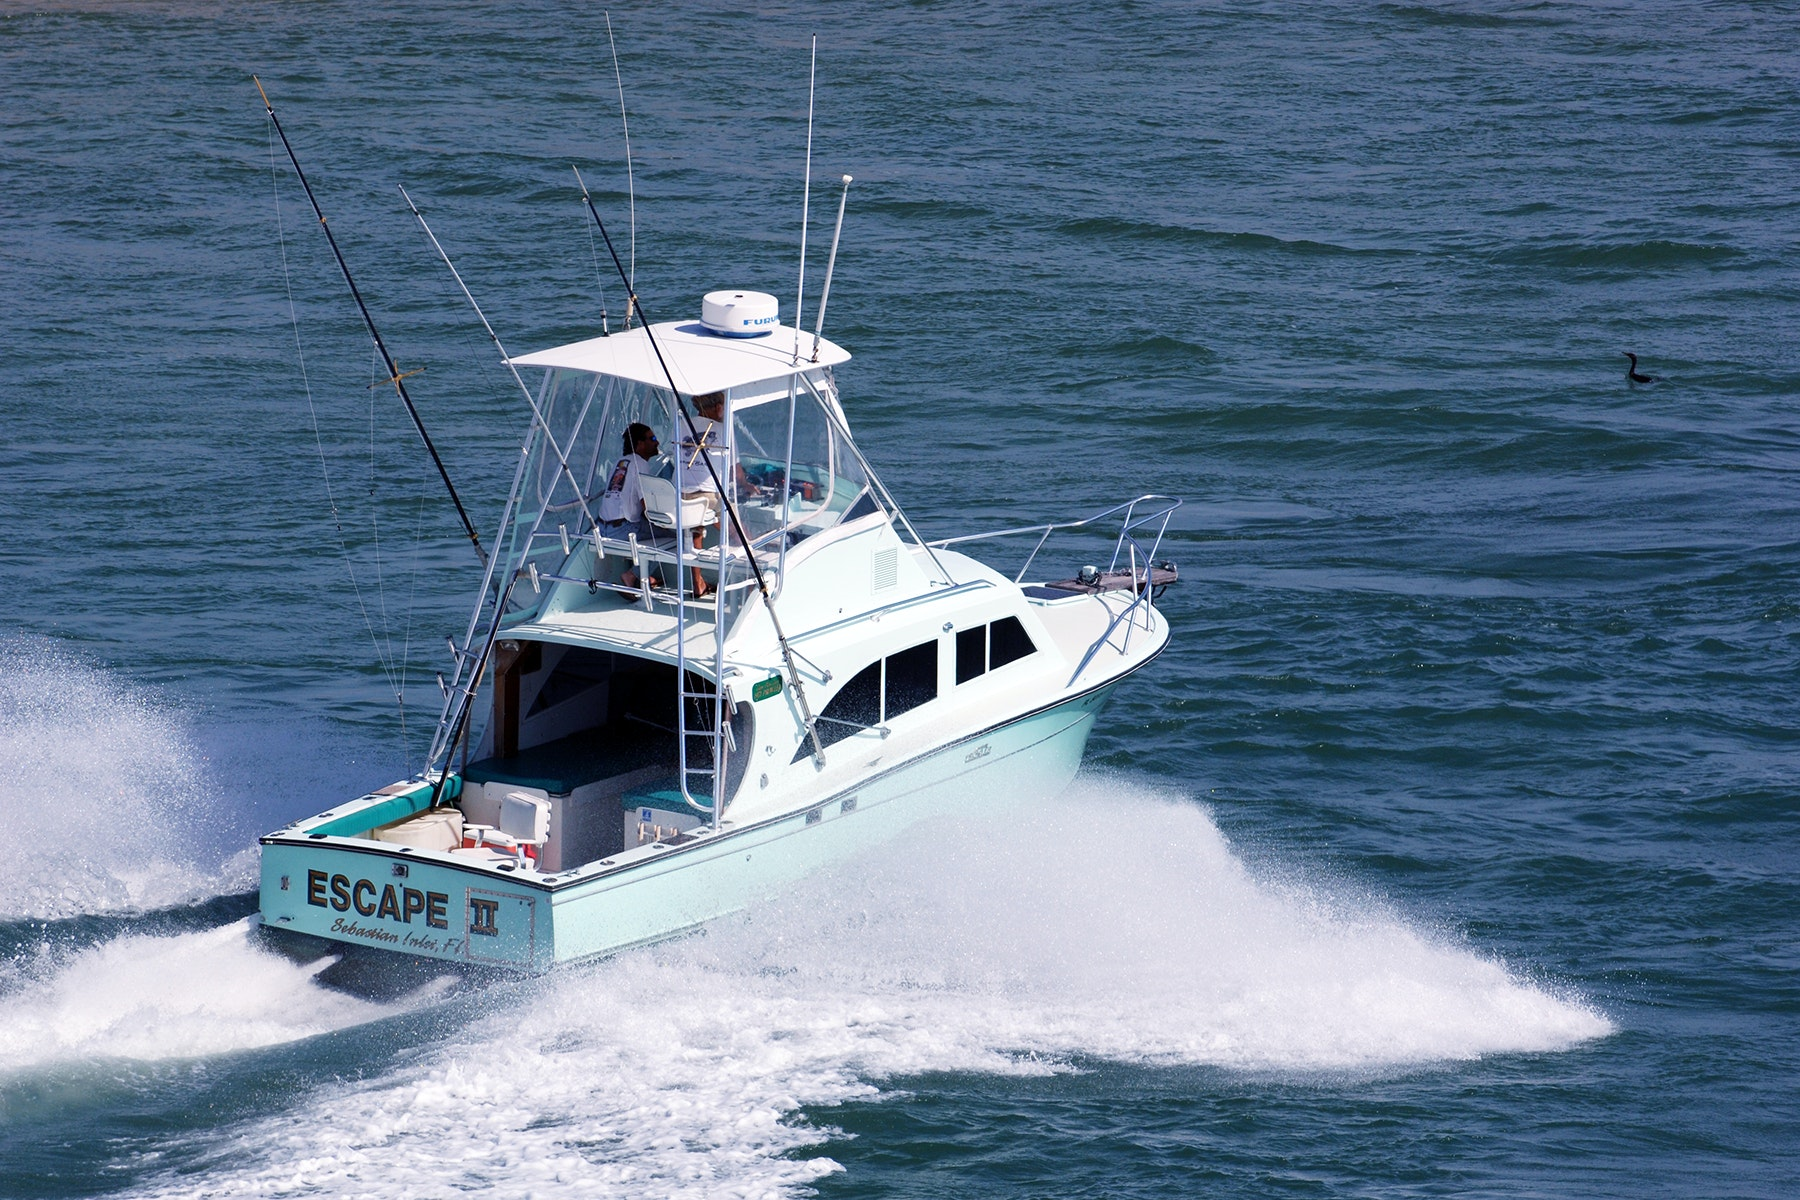 Boat named Escape II headed out to the Atlantic Ocean